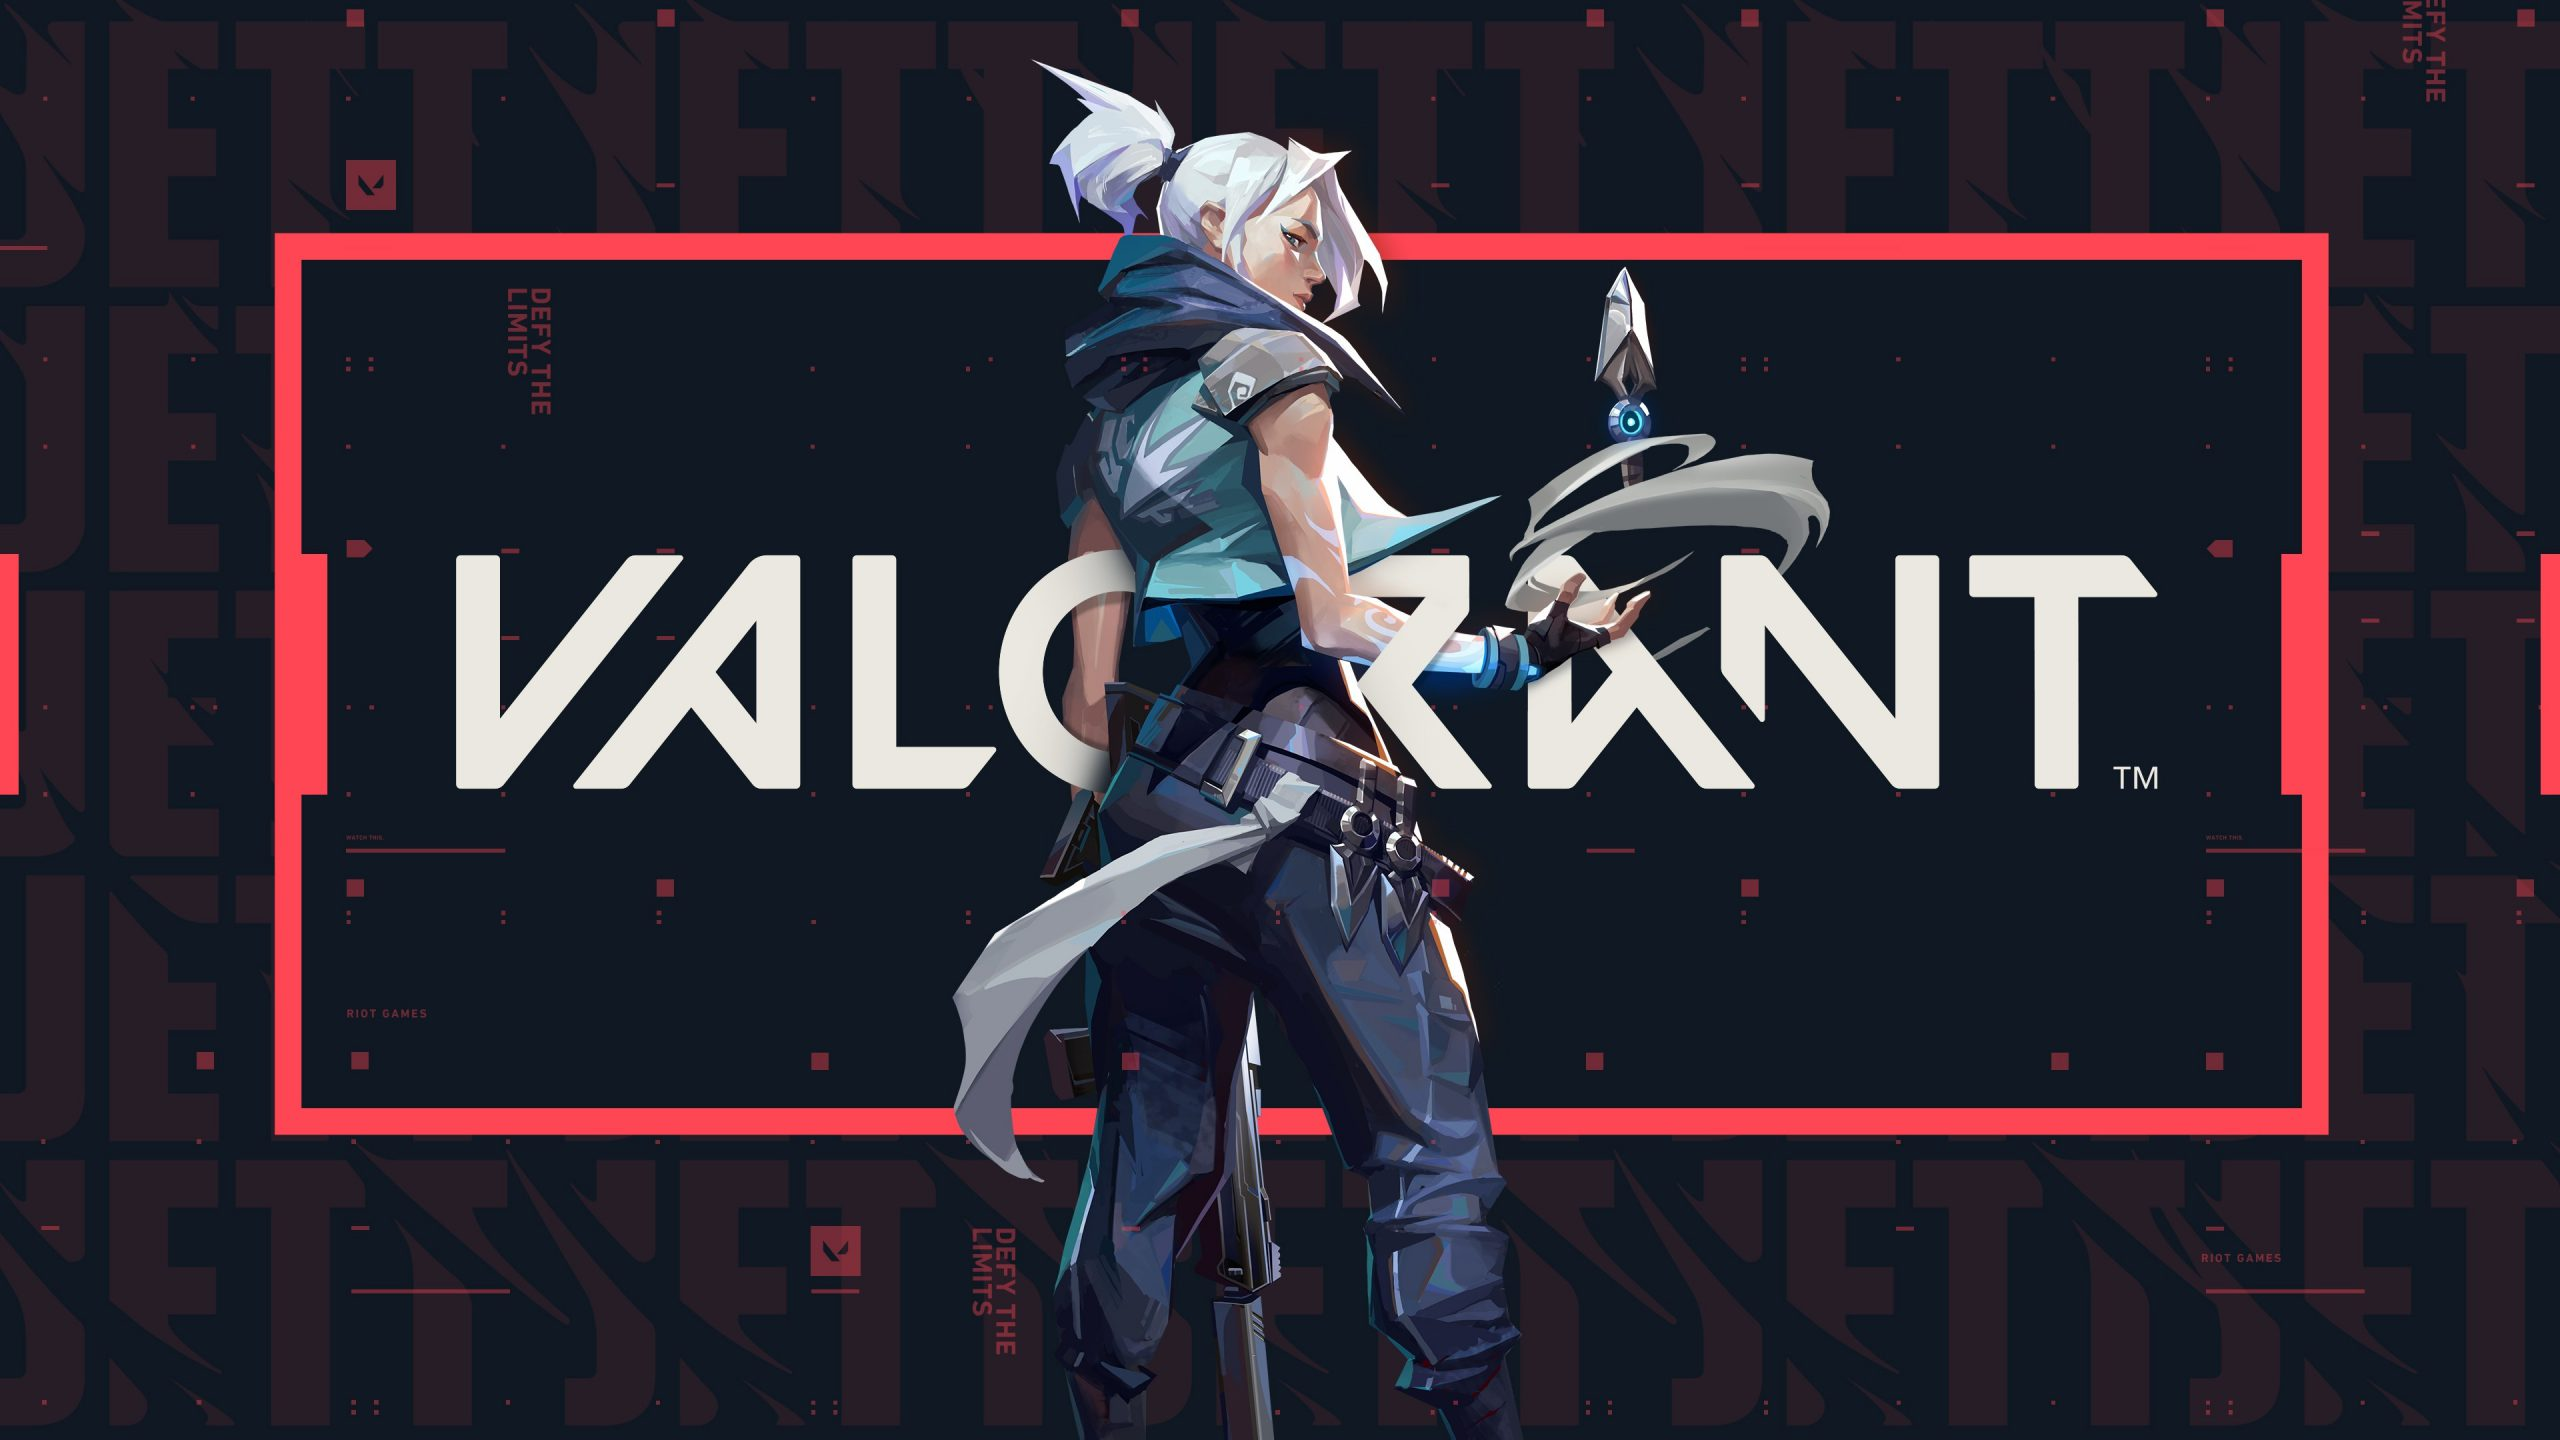 Valorant Wallpaper 4K   KoLPaPer   Awesome HD Wallpapers 2560x1440